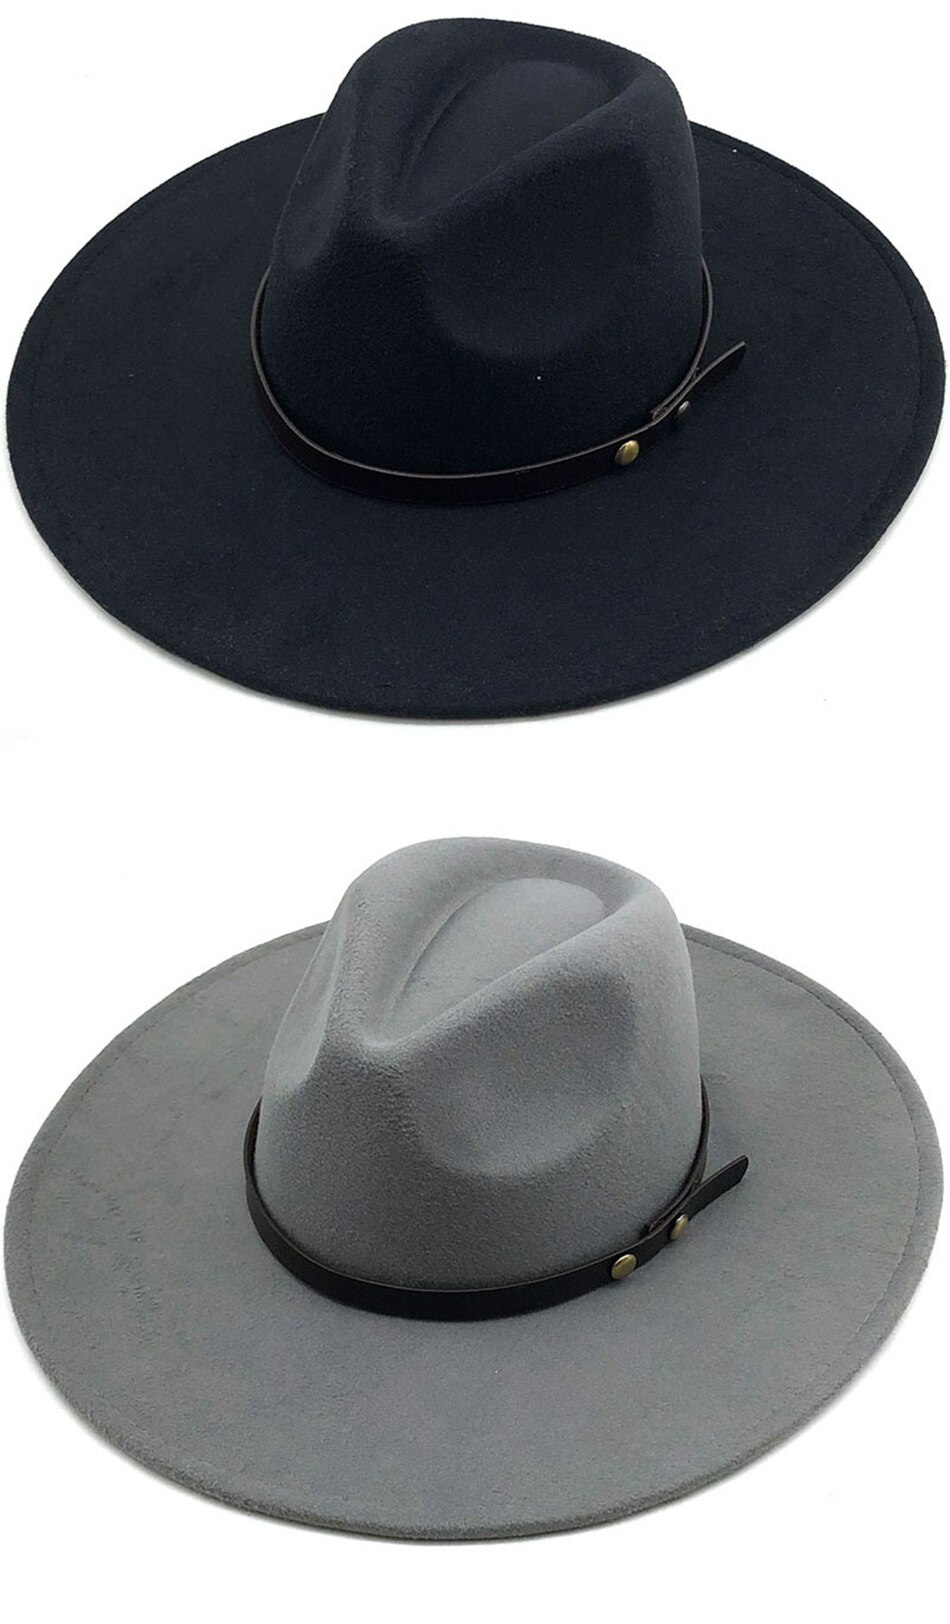 FS 2020 Winter Wool Solid Fedoras Cap For Men Women Panama Jazz Hat Wide Brim Big Church Hats With Leather Ribbon Chapeau Femme